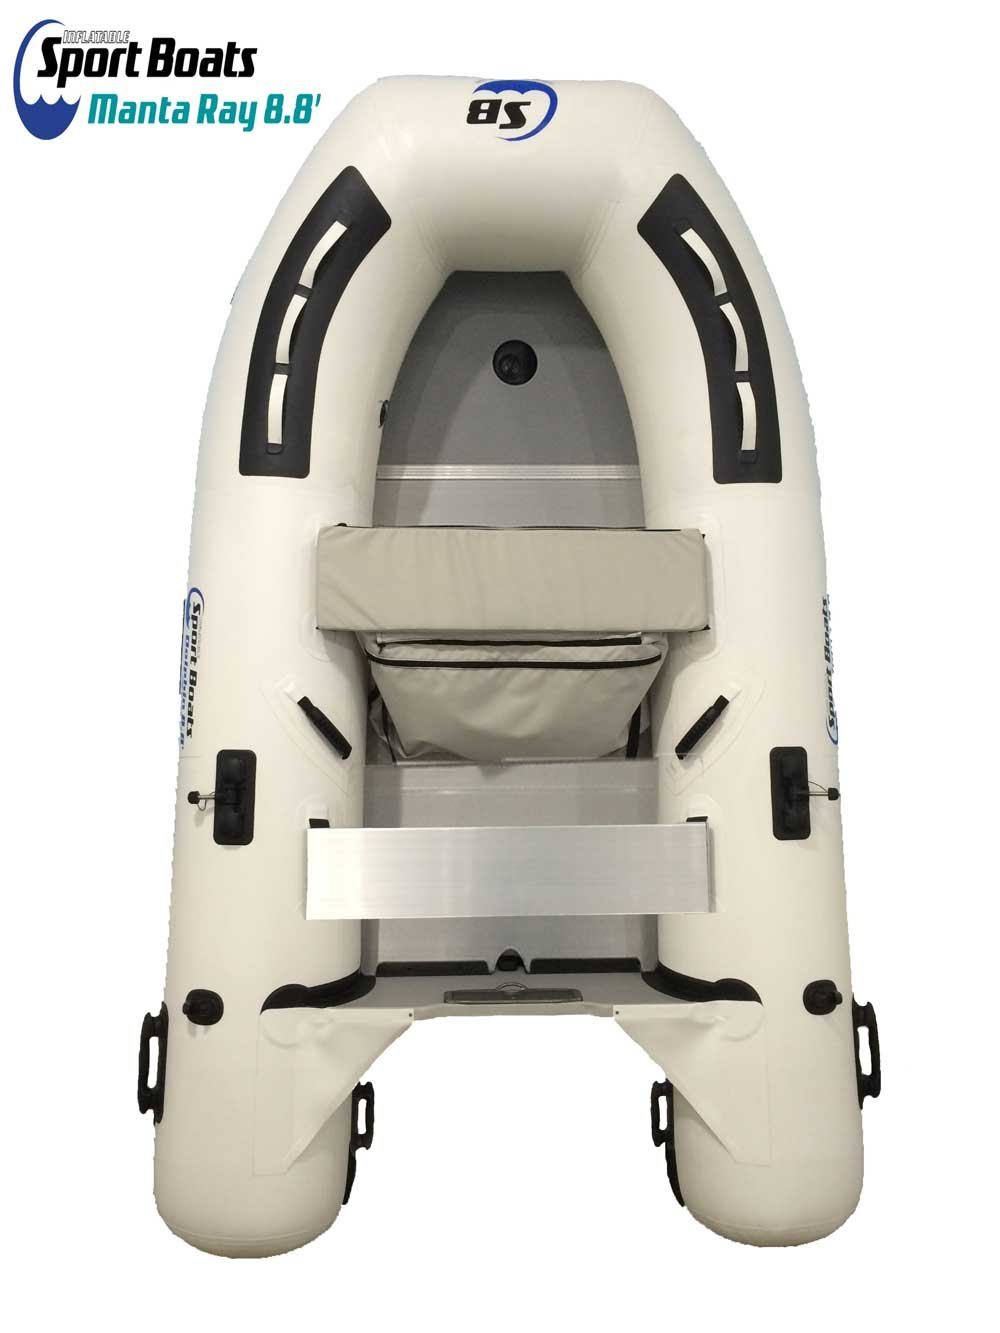 Inflatable Sport Boats Manta Ray 8.8' - Best Flying Fishing Boats